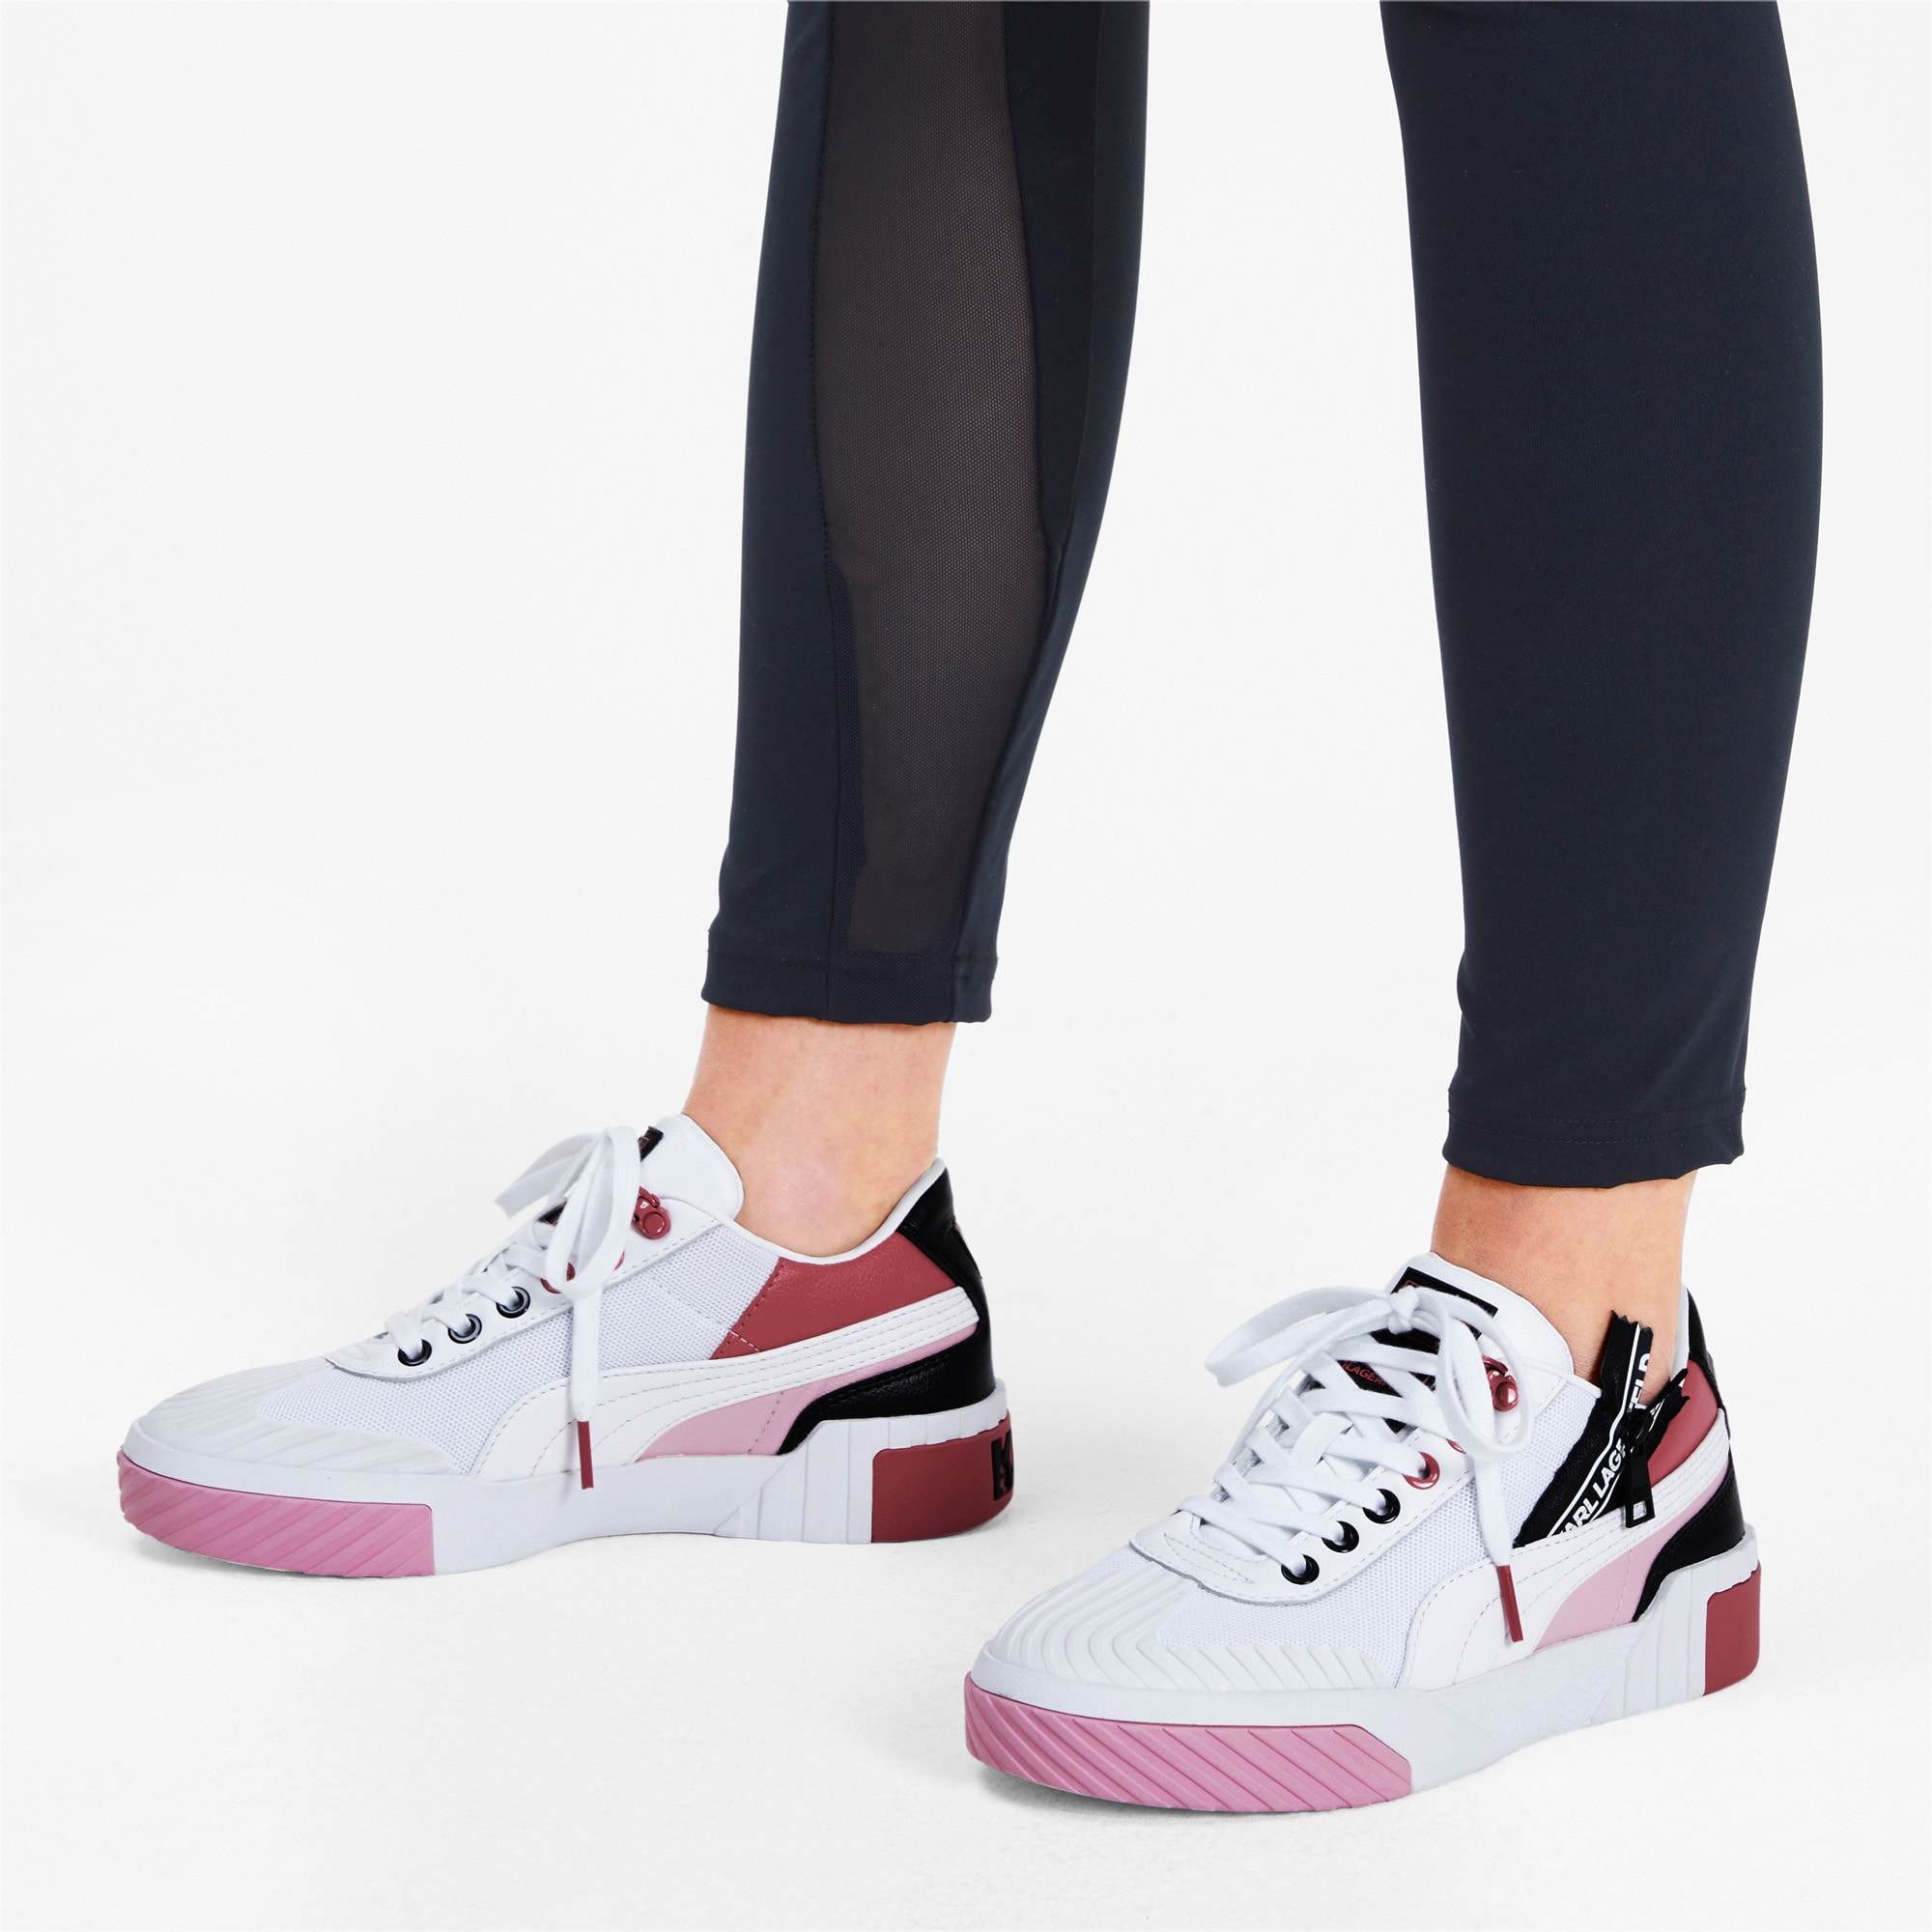 PUMA x KARL LAGERFELD Cali Women's Sneakers, Puma White-PRISM PINK, large